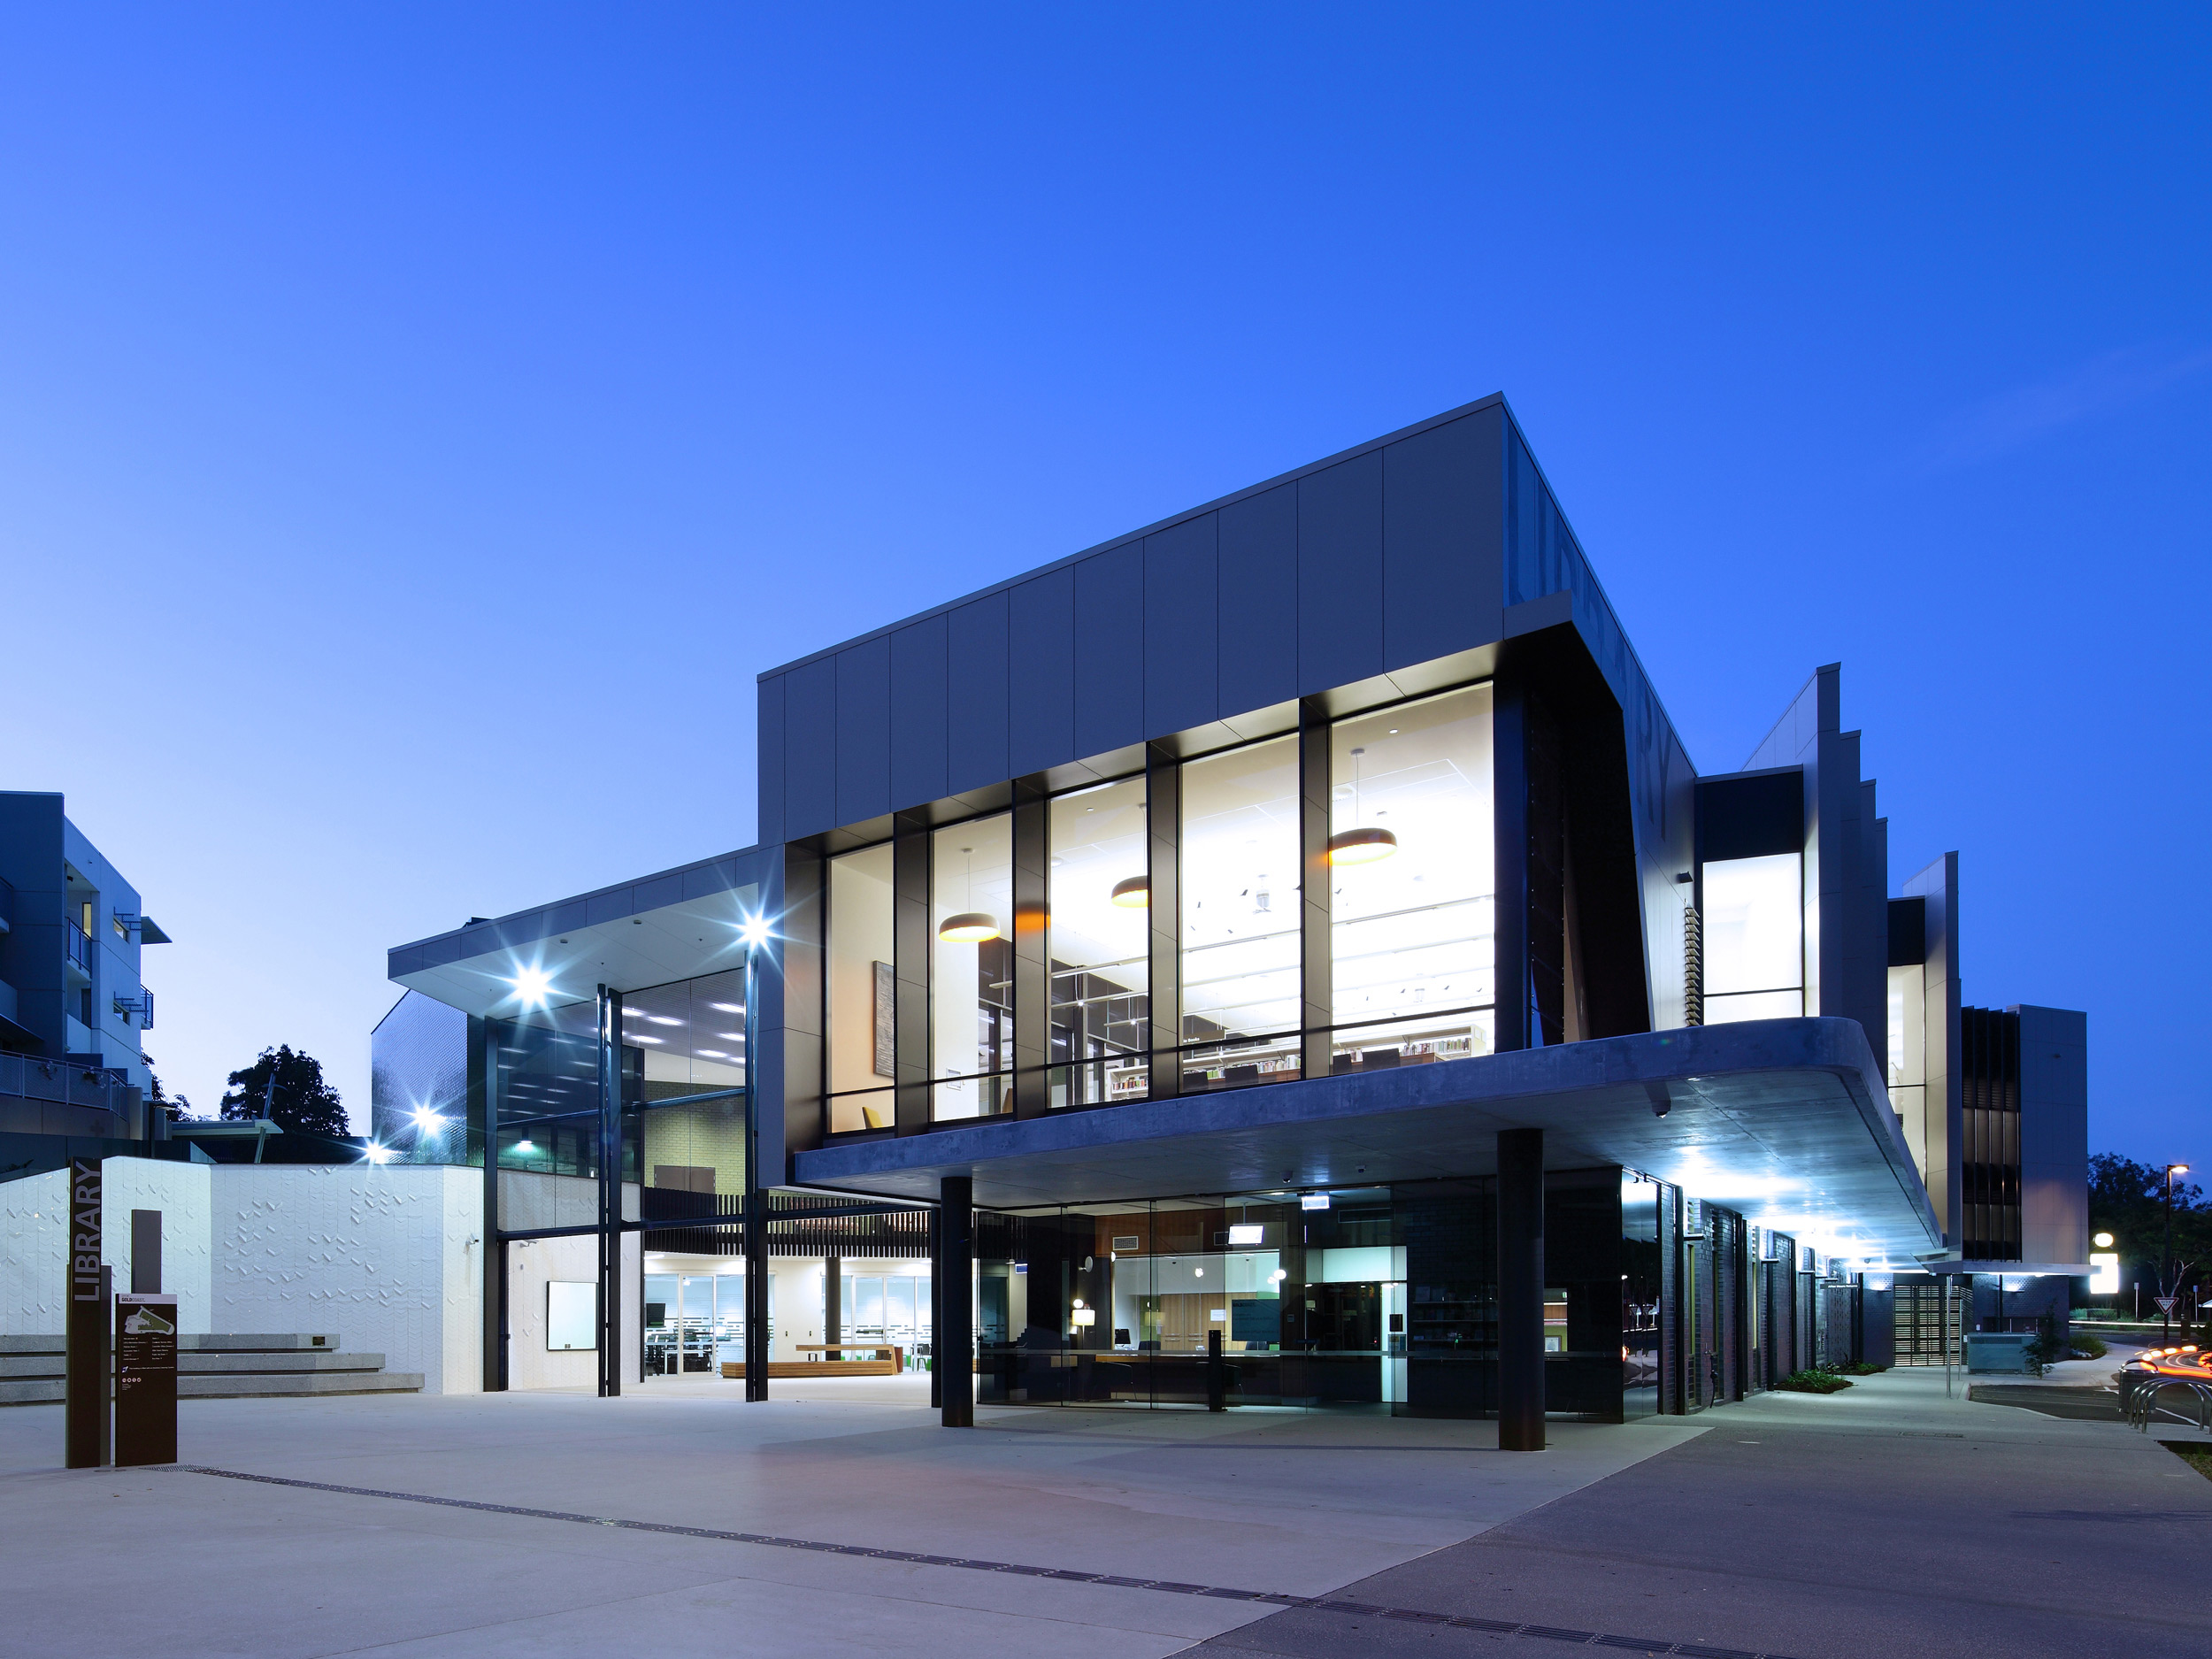 Helensvale Library and Community Cultural Youth Centre